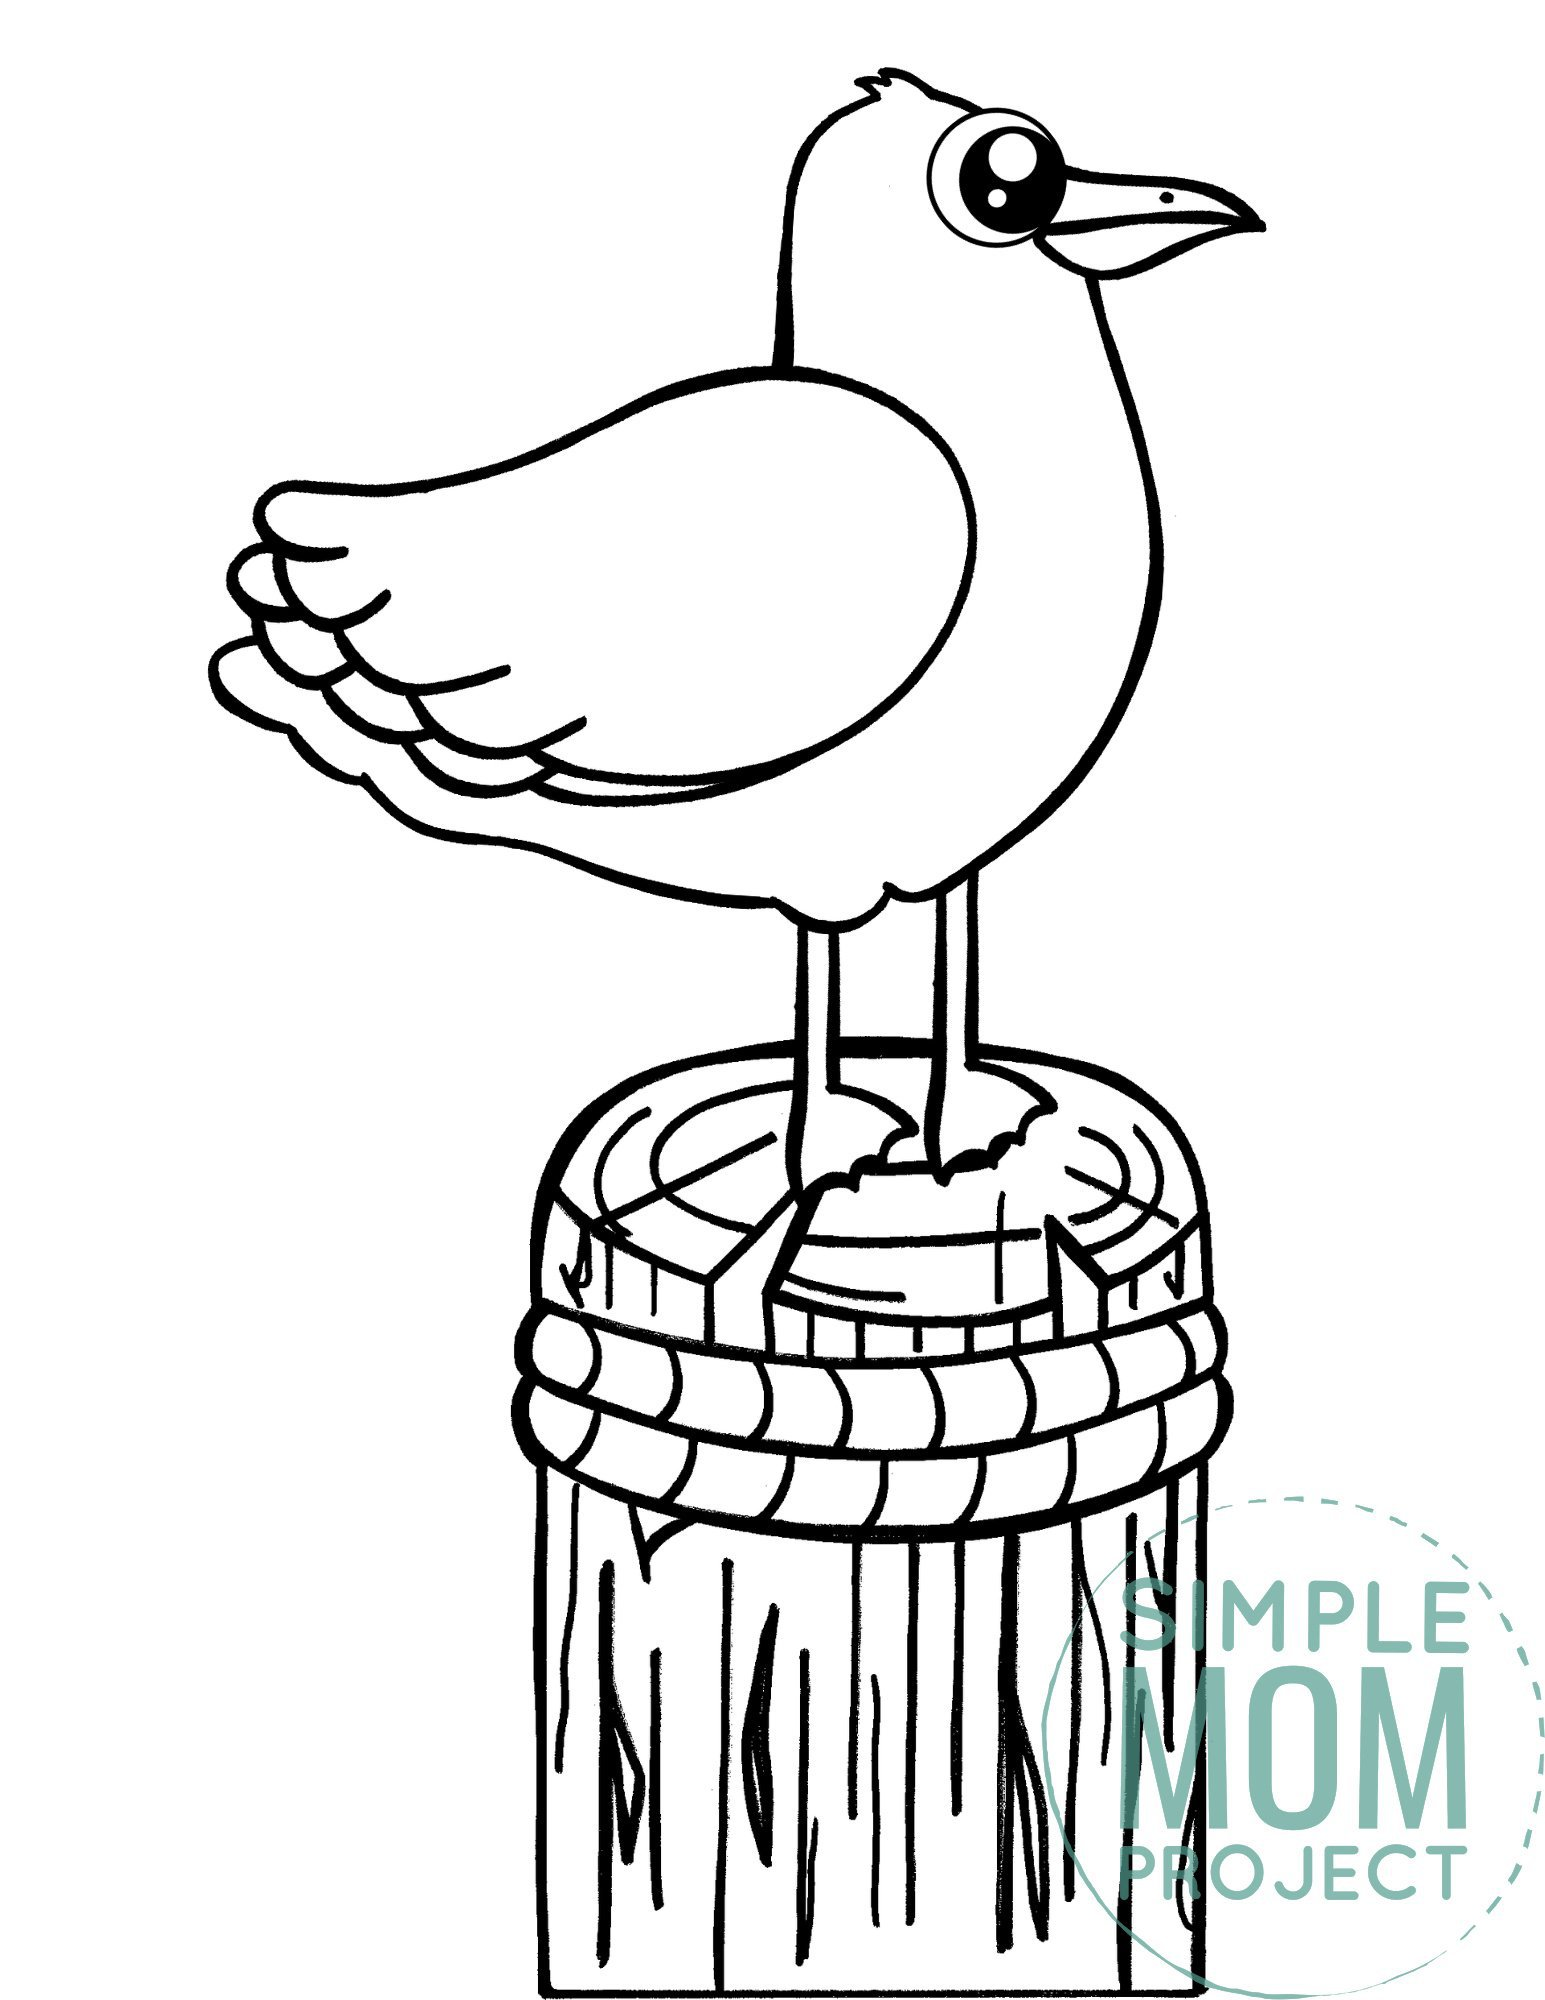 Free Printable Seagull Ocean Animal Coloring Page for Kids